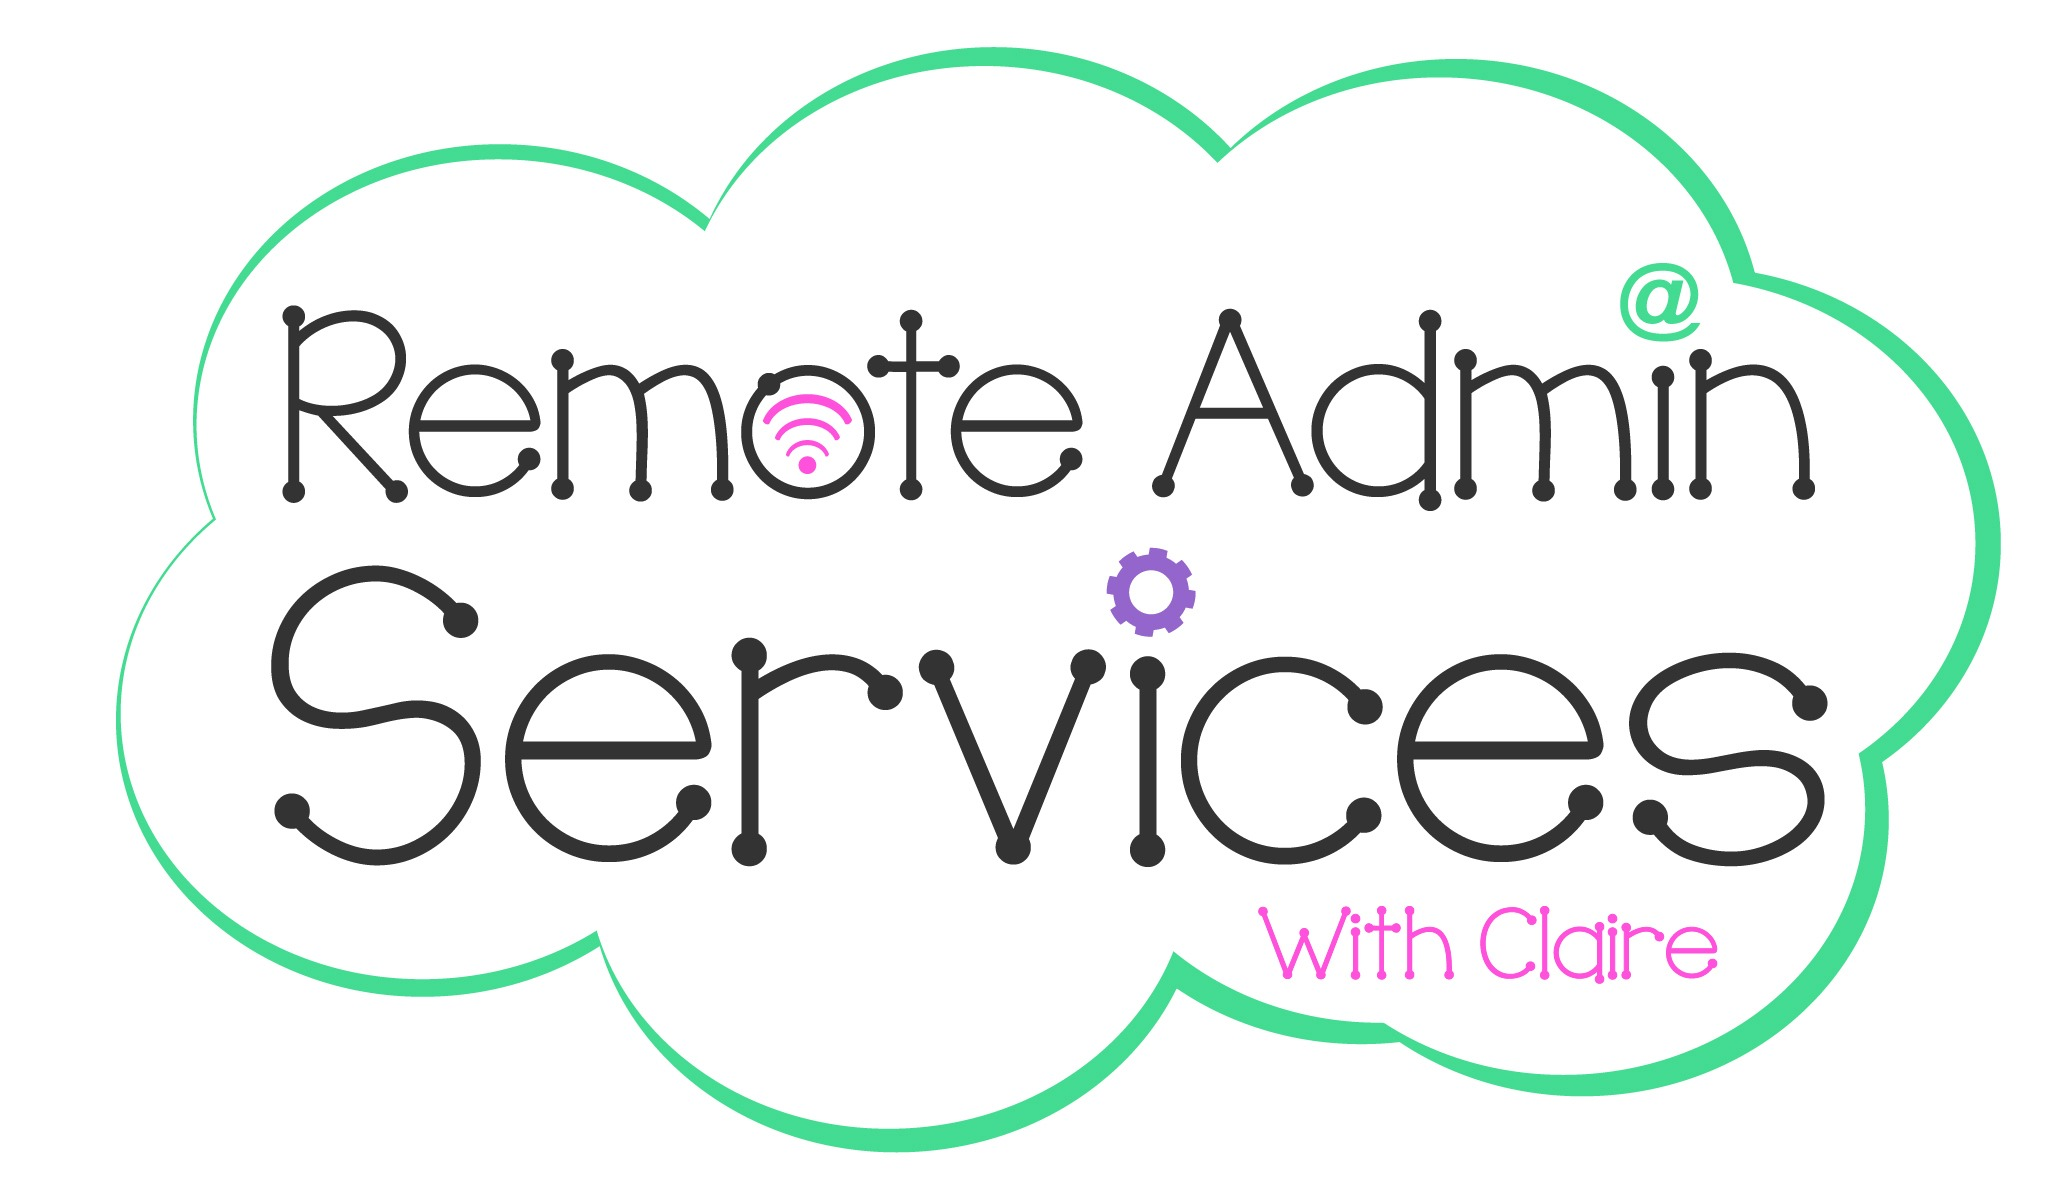 Remote Admin Services Training School